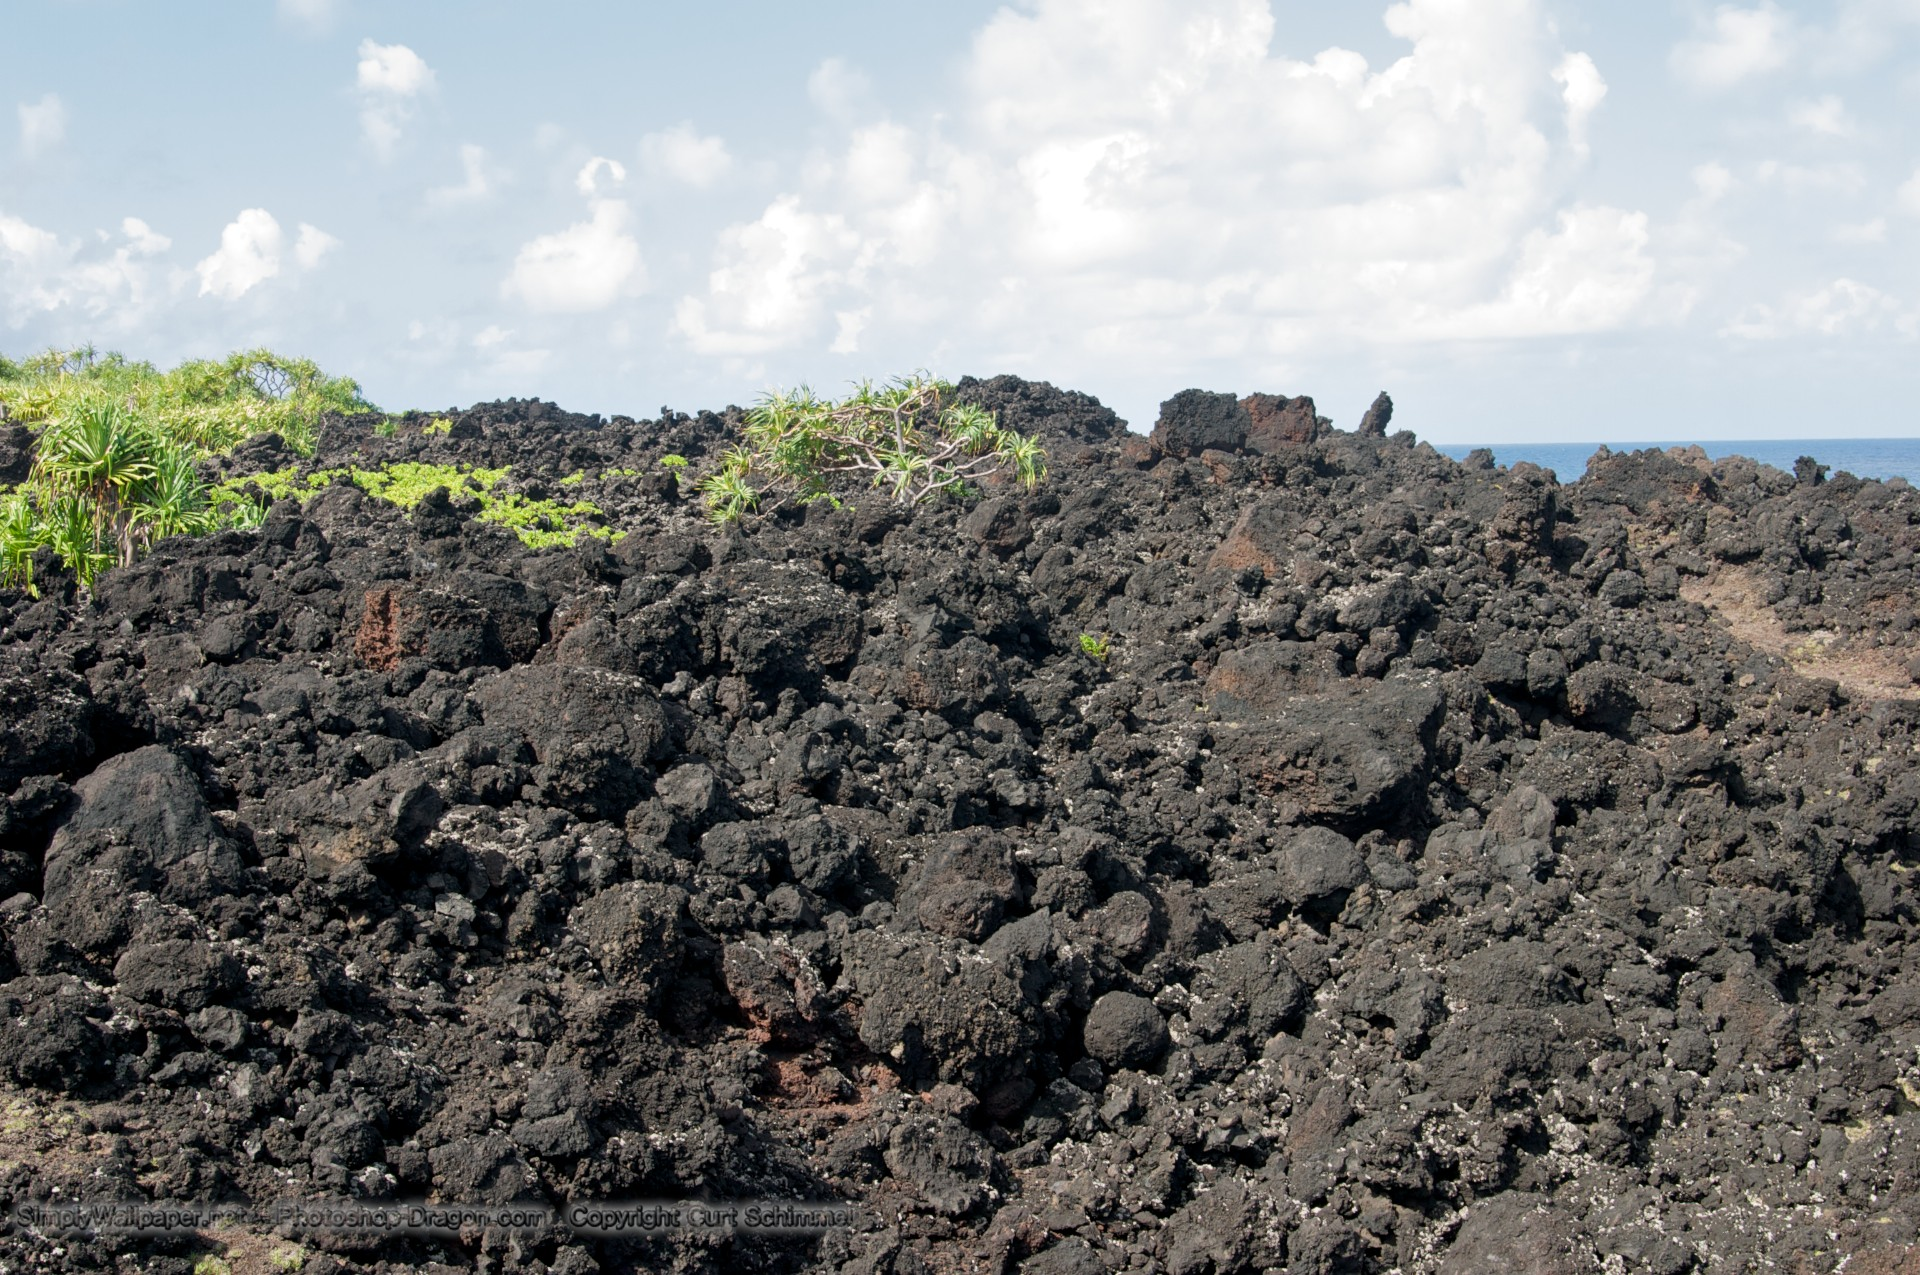 Lava Rock Plants Plants Amid The Lava Field at